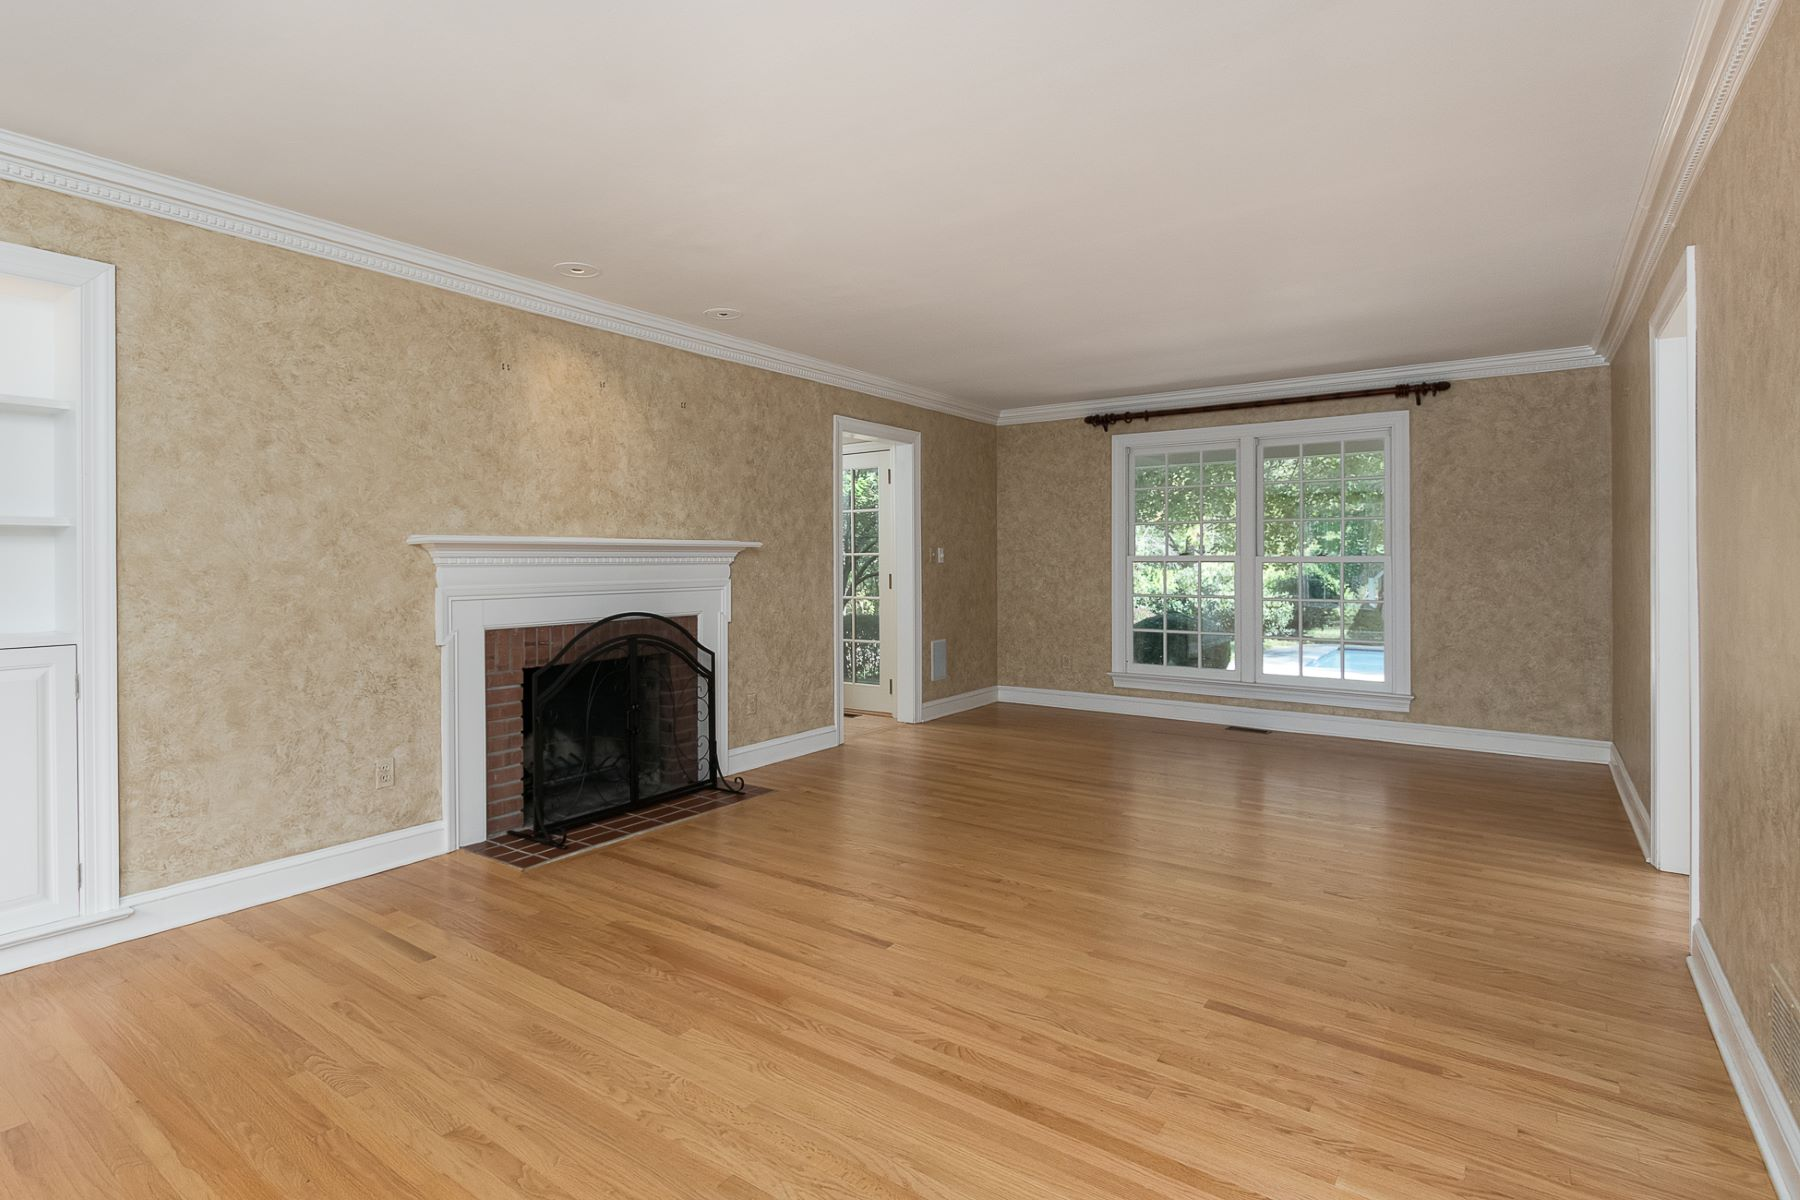 Additional photo for property listing at An In-Demand Architect's Most Personal Project 76 Stetson Way, Princeton, New Jersey 08540 United States